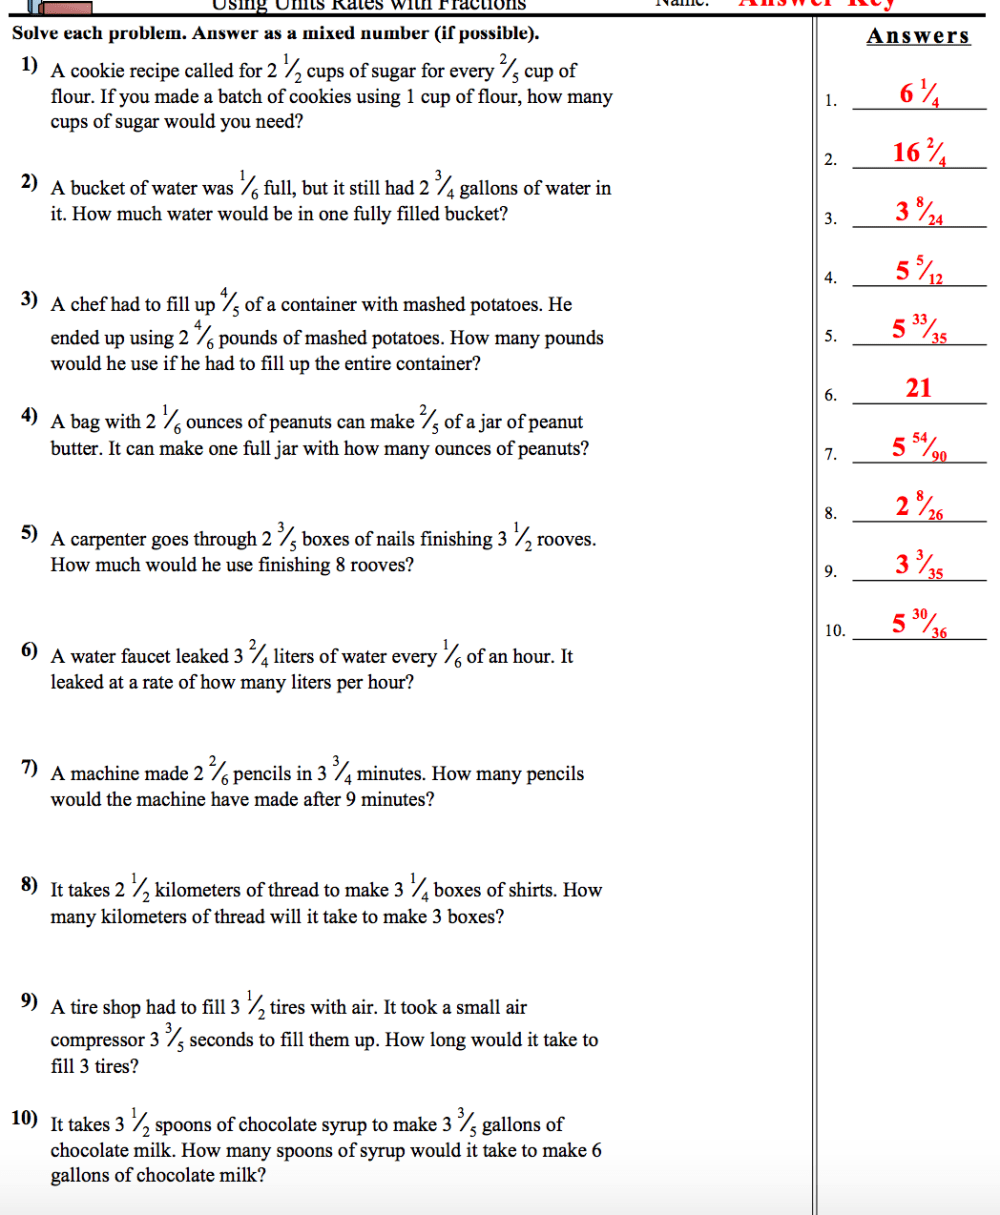 medium resolution of Unit Rates With Fractions Worksheet Answers - NMS Self-Paced Math